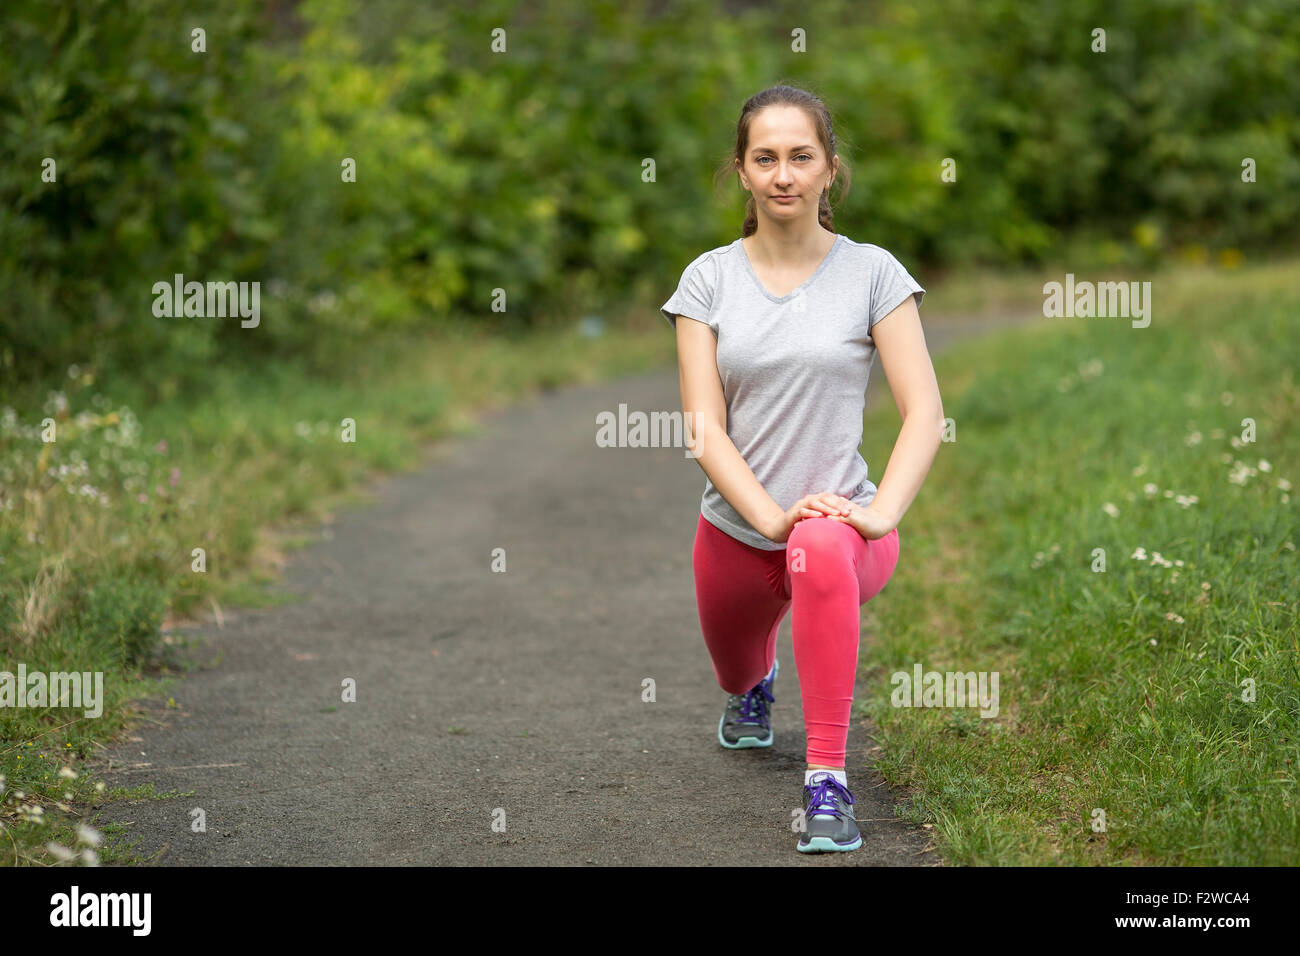 Young sporty girl is warming up outdoors. A healthy lifestyle. - Stock Image